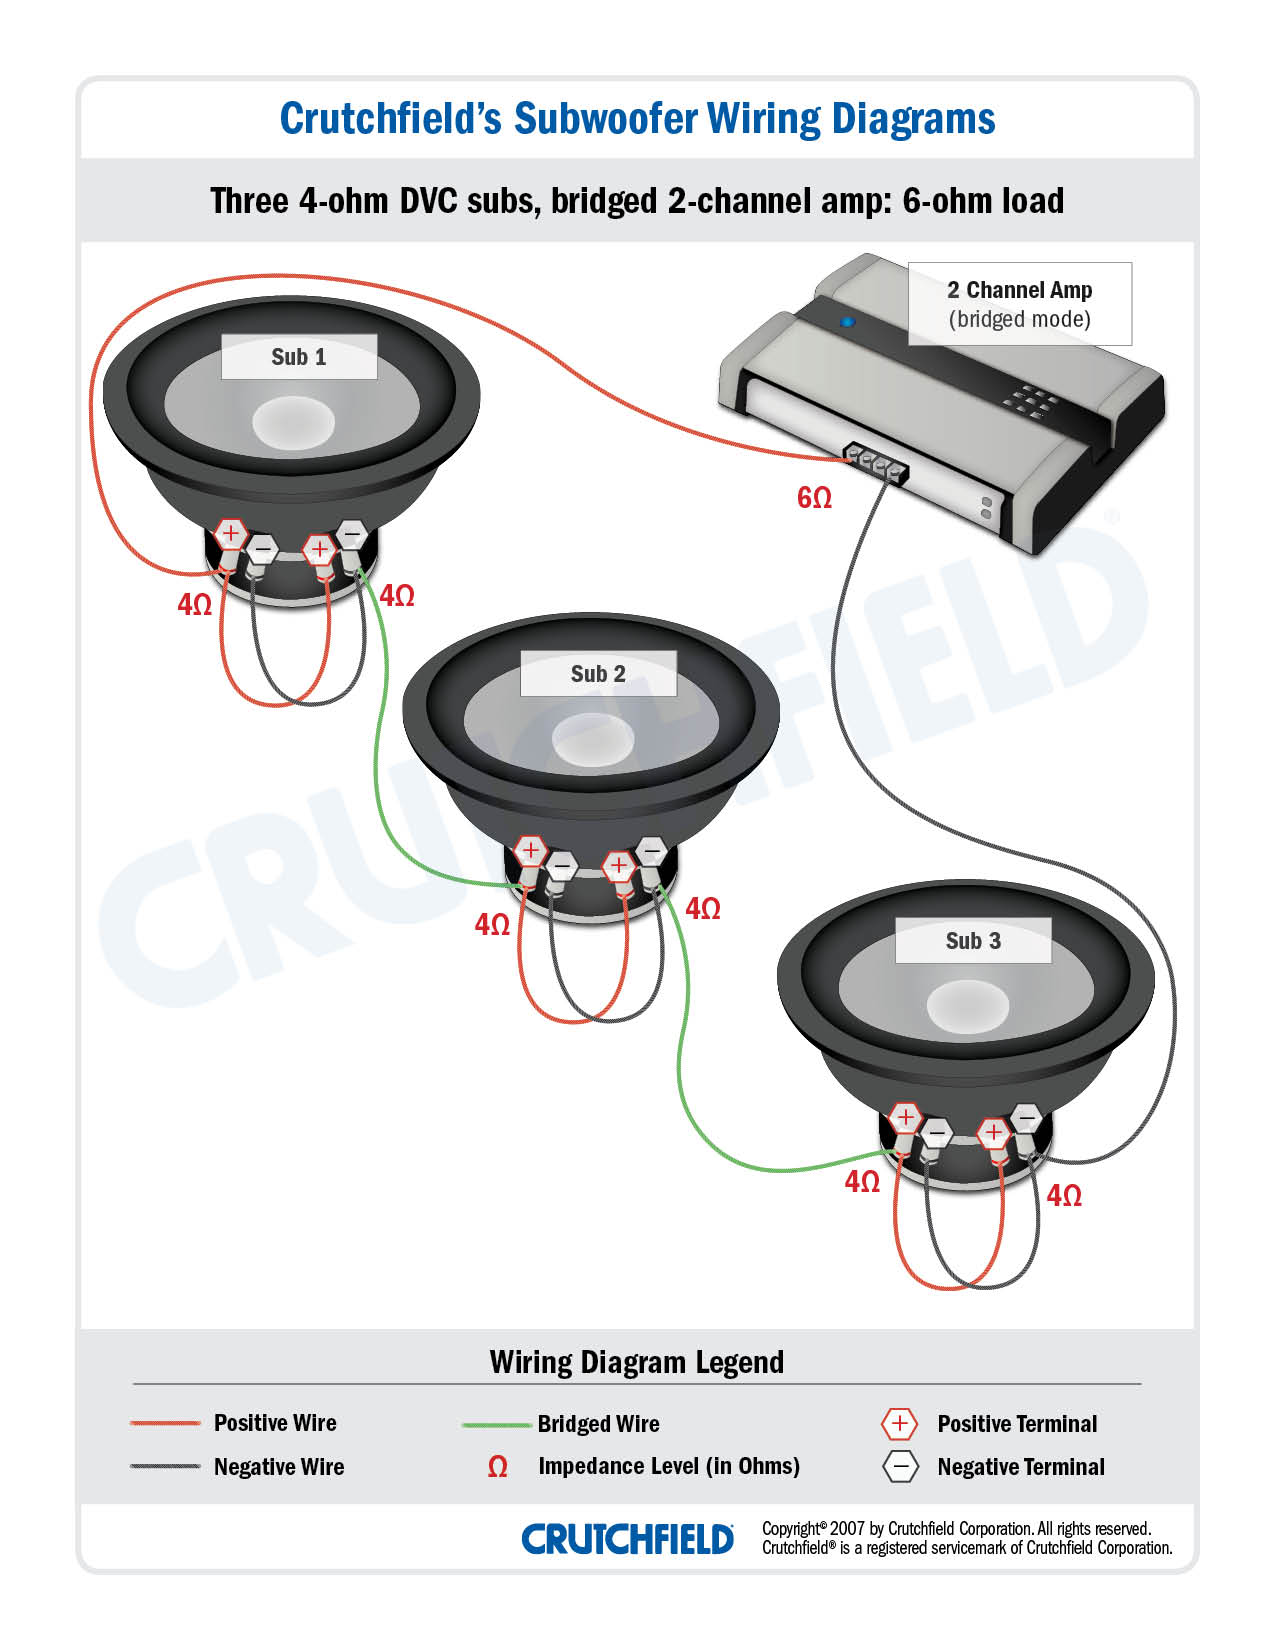 3 DVC 4 ohm 2 ch subwoofer wiring diagrams kicker cvr wiring diagram at n-0.co